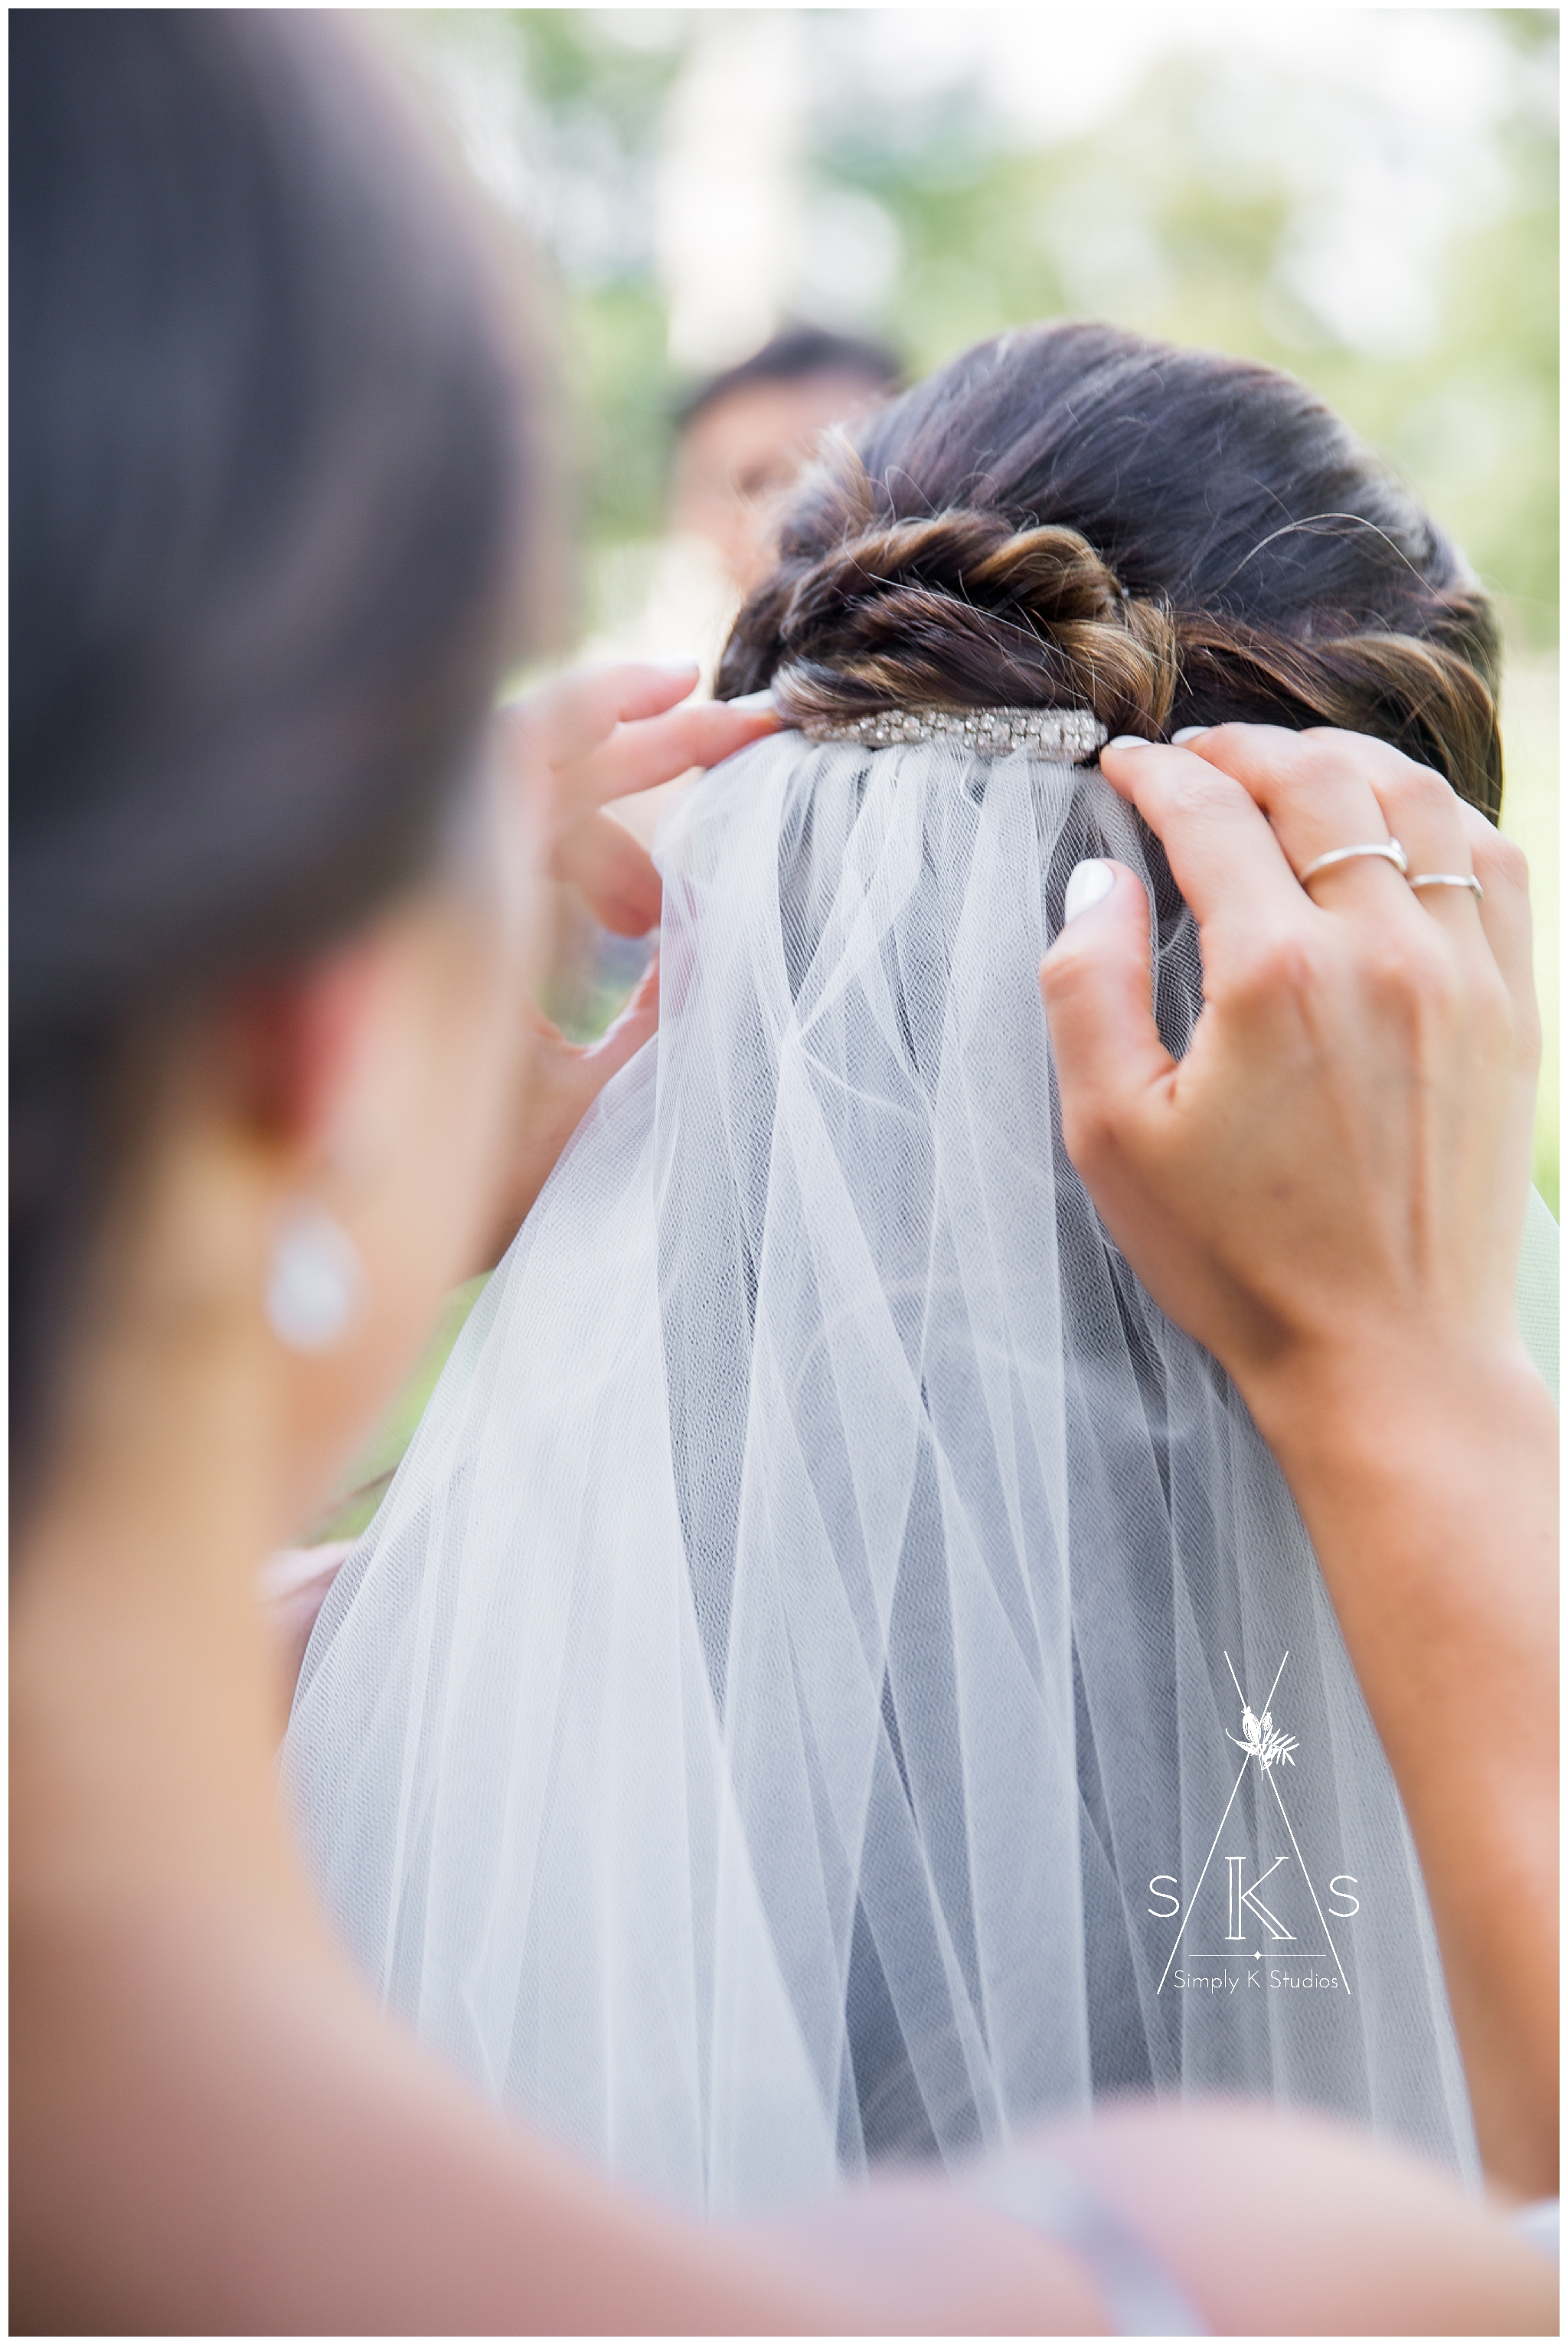 Veil for a wedding day